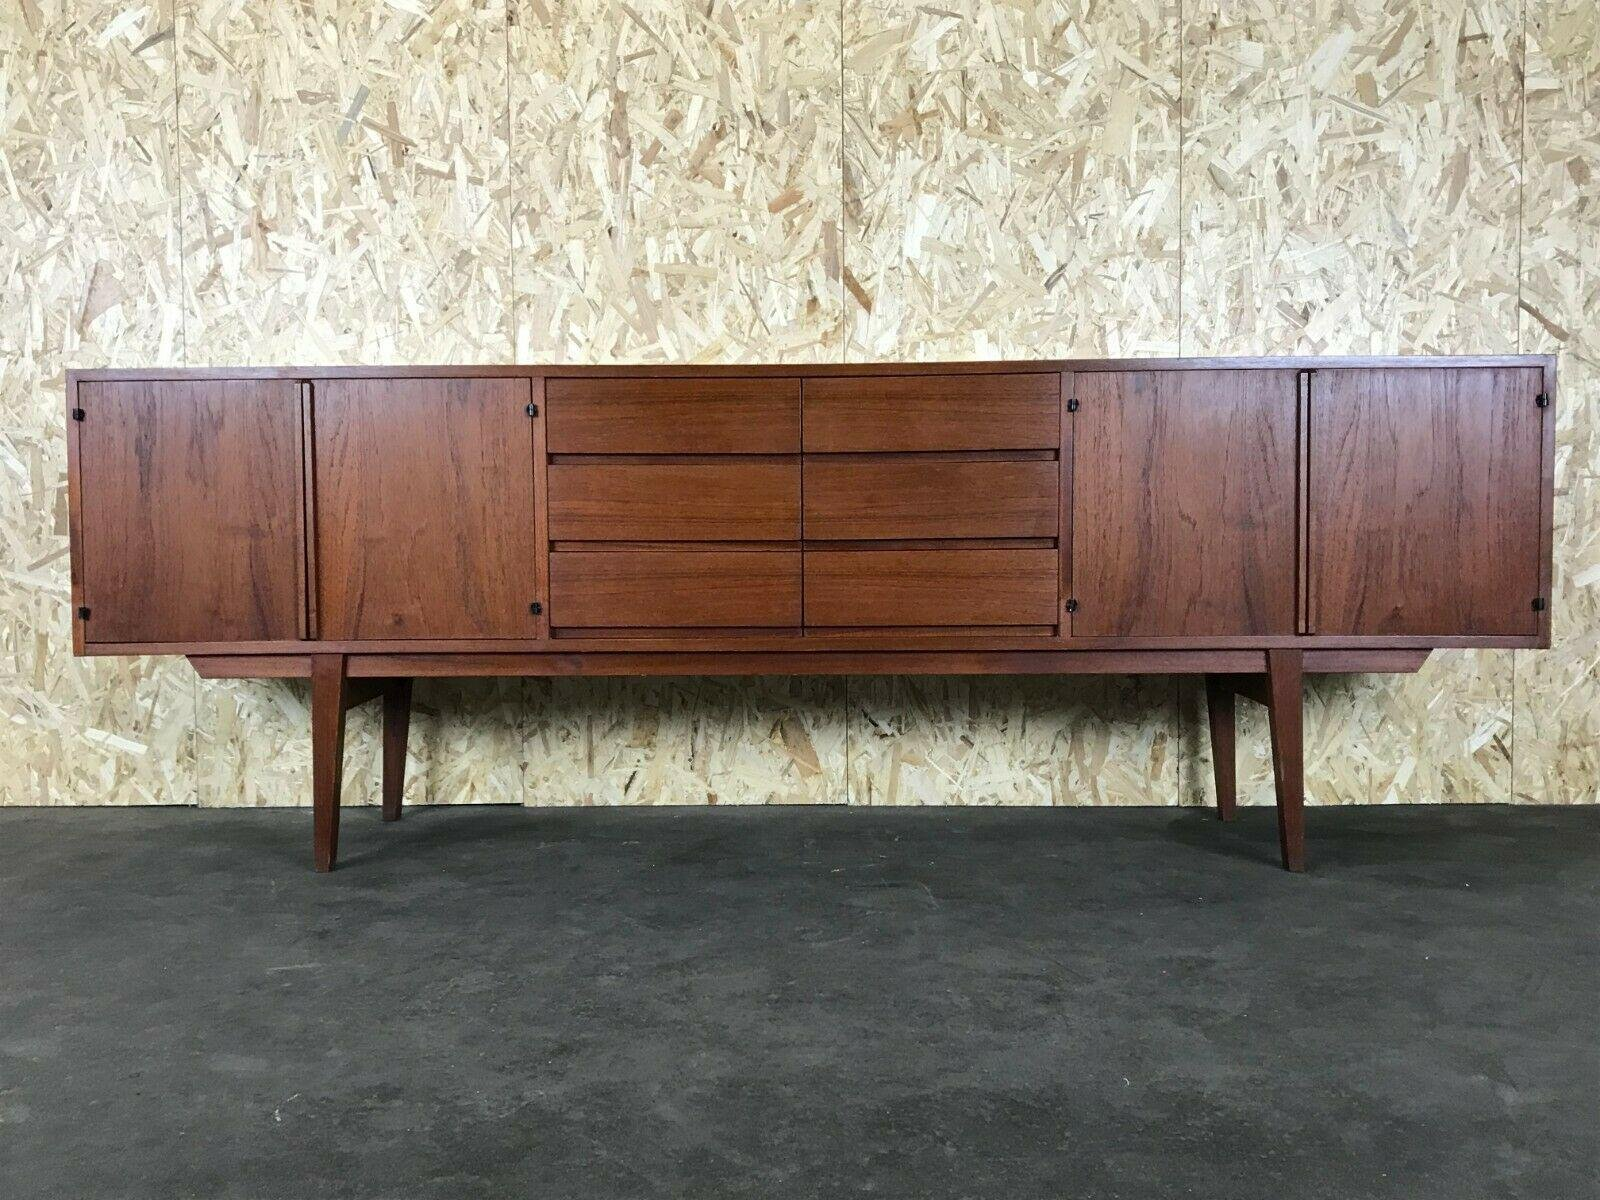 Sideboard Antik Mid-century Finnish Teak Sideboard From Asko, 1960s For Sale At Pamono